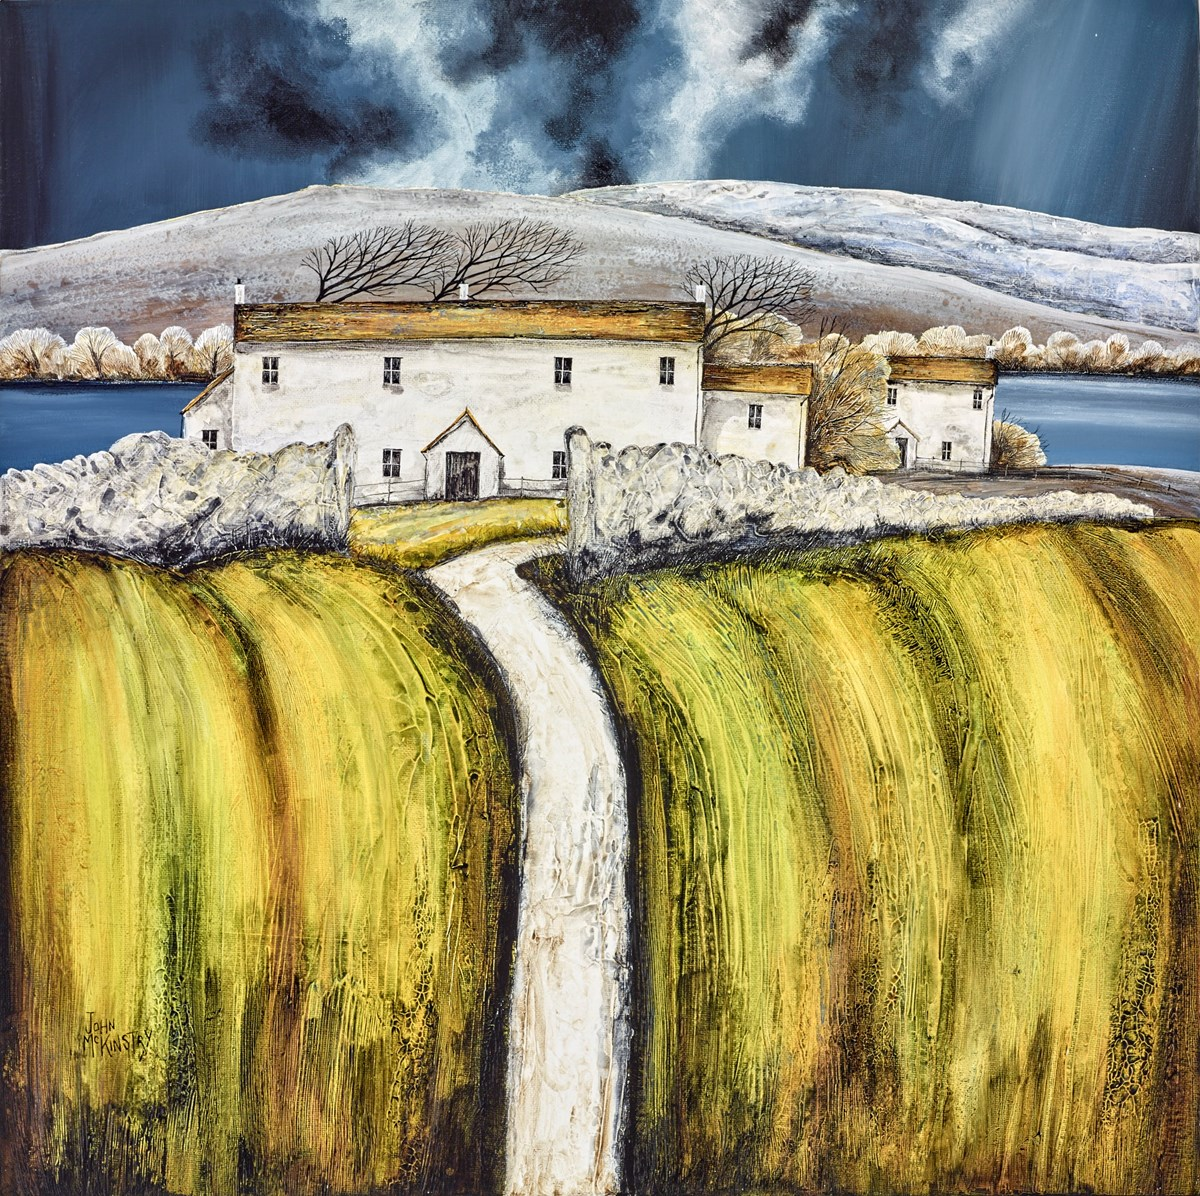 Storm on the Moor by john mckinstry -  sized 24x24 inches. Available from Whitewall Galleries